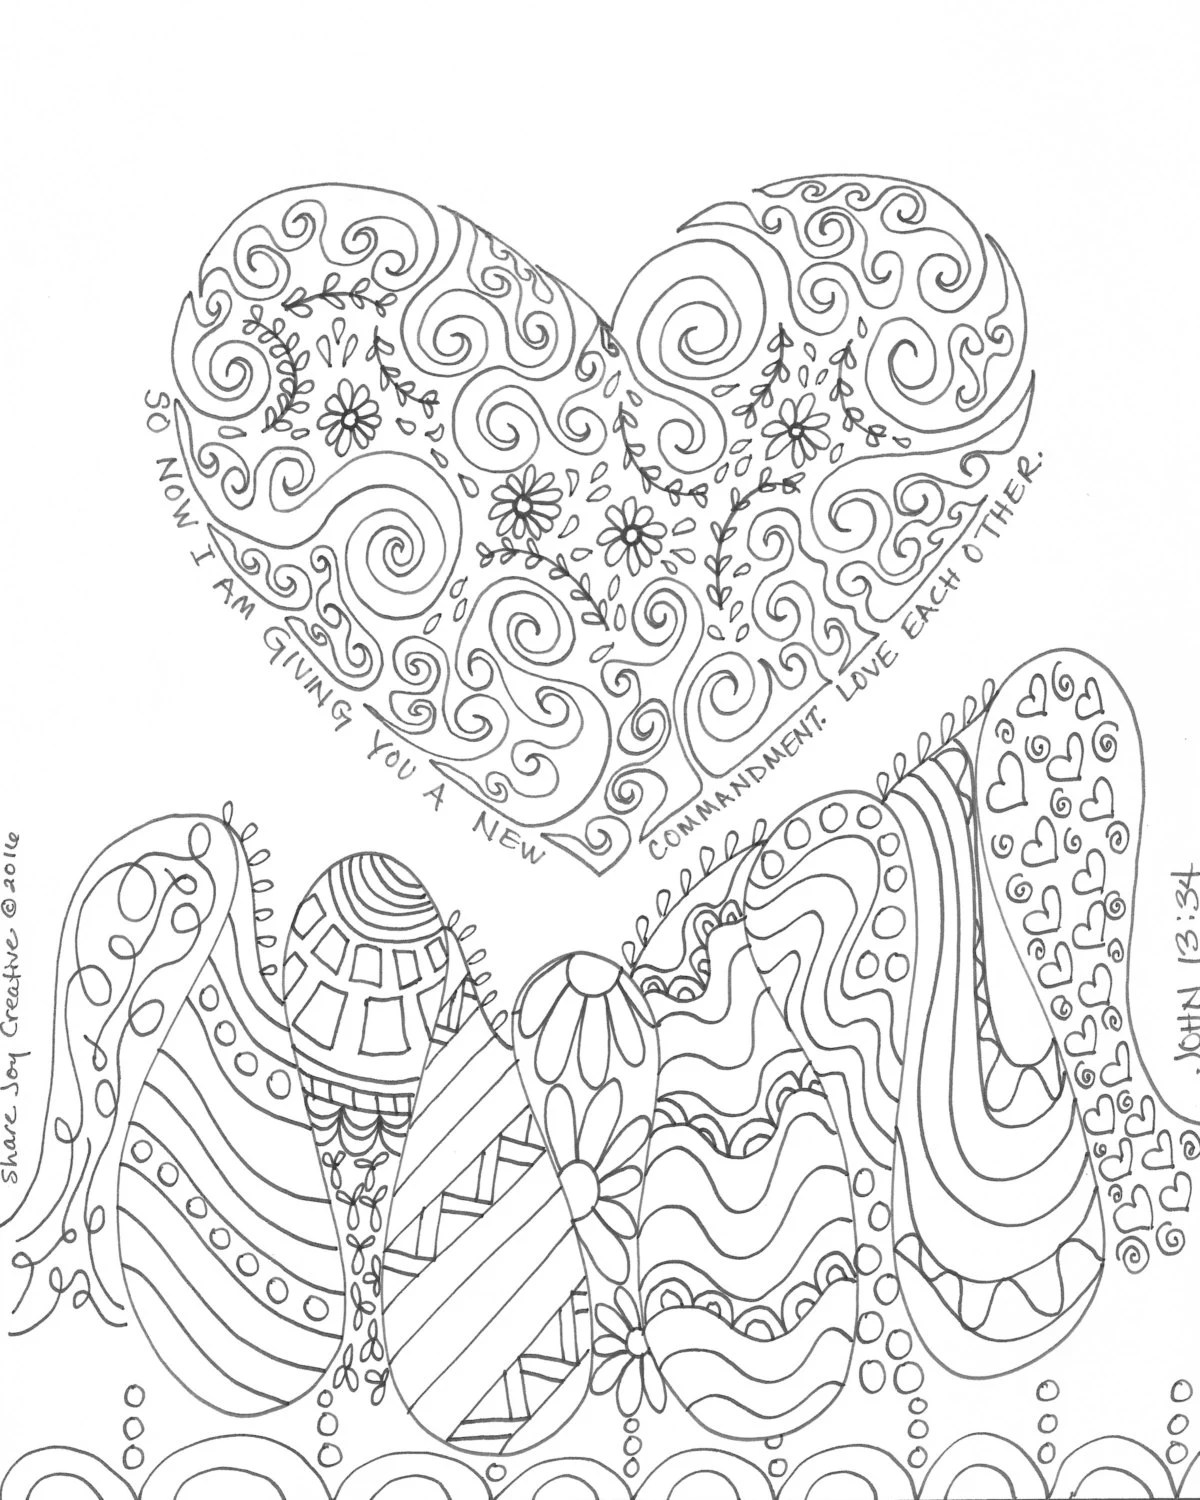 The Fruit of the Holy Spirit Coloring Page